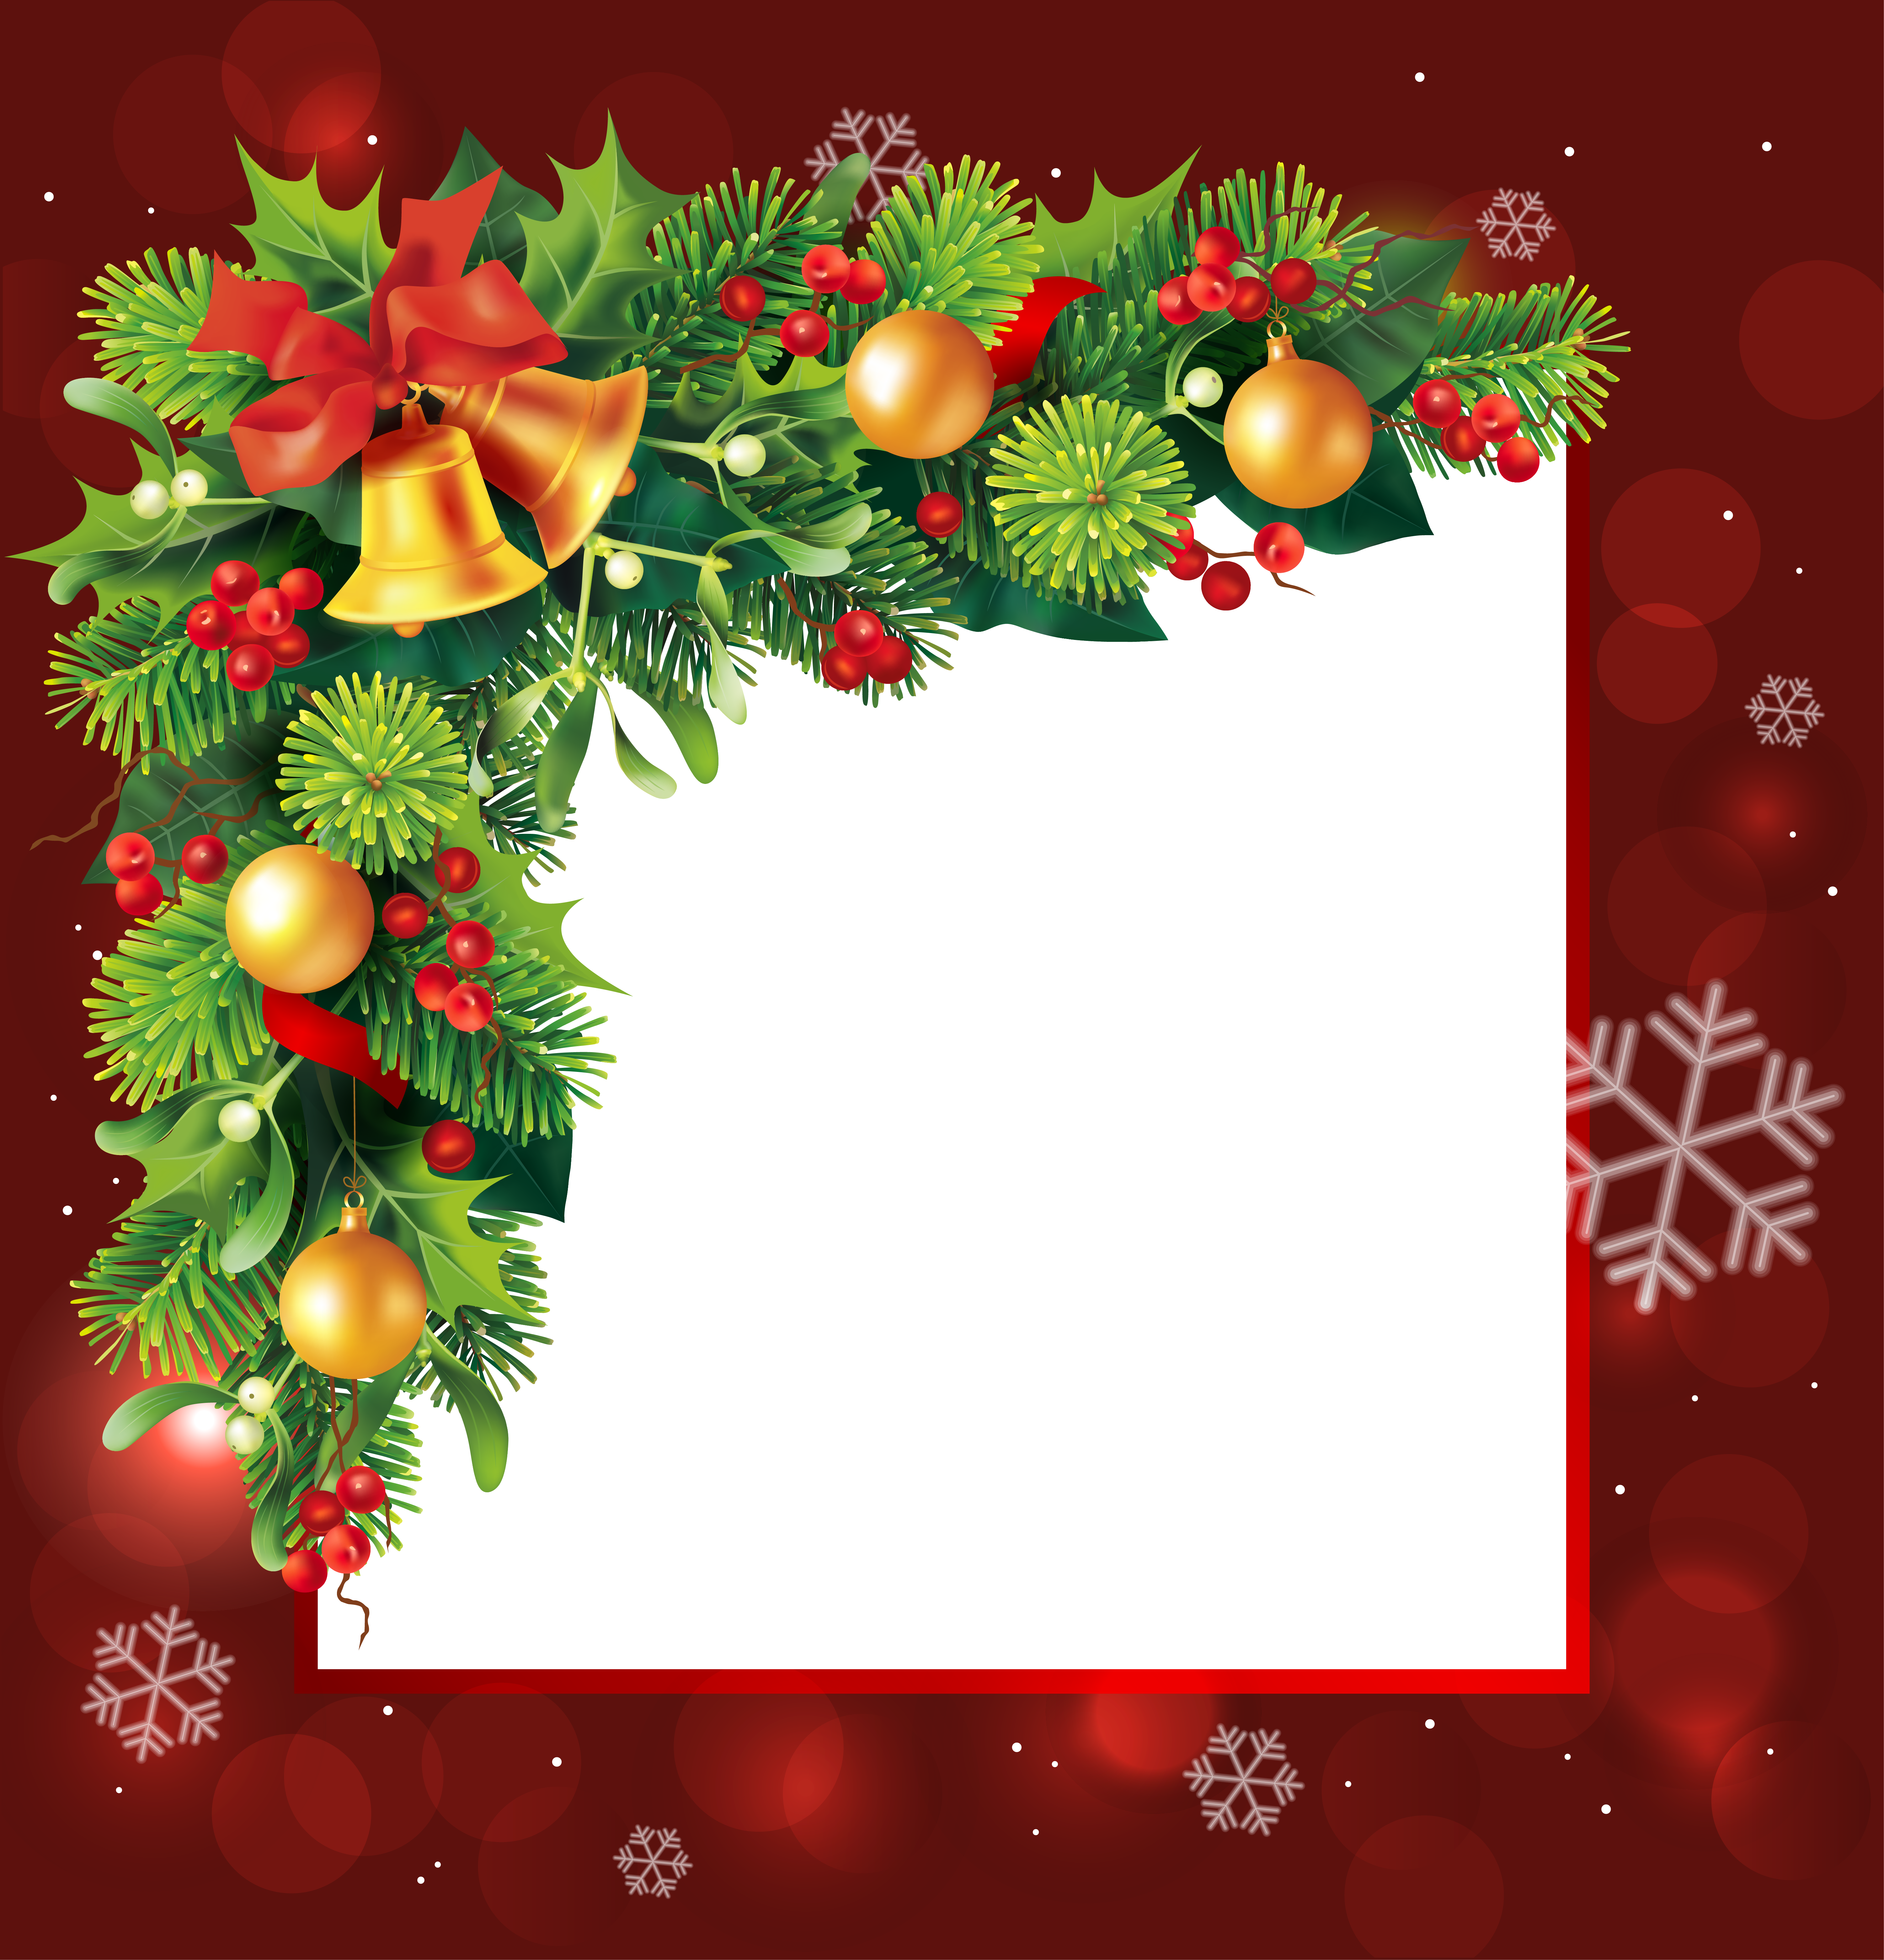 Christmas Card Frame.Christmas Card Frame Transparent Png Clipart Free Download